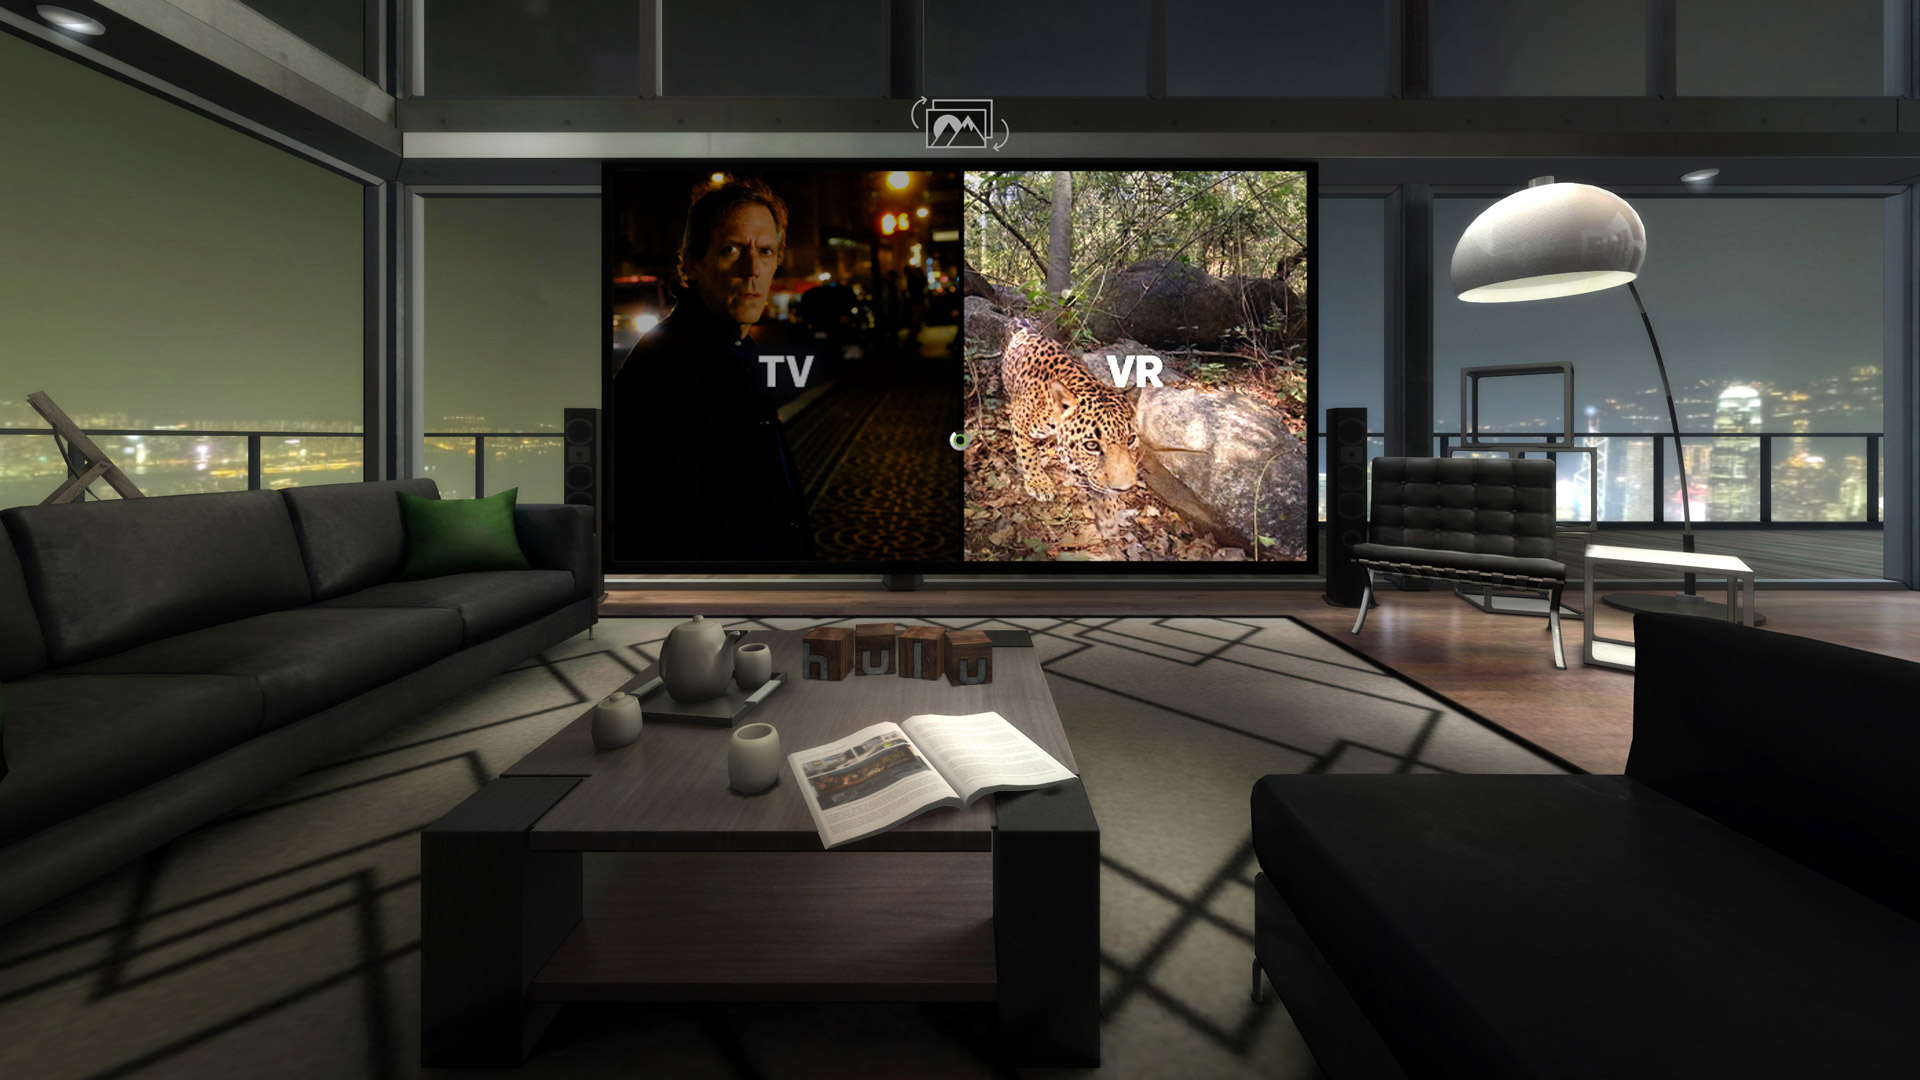 Hulu Beats Netflix to Social Viewing in VR on Gear VR – Road